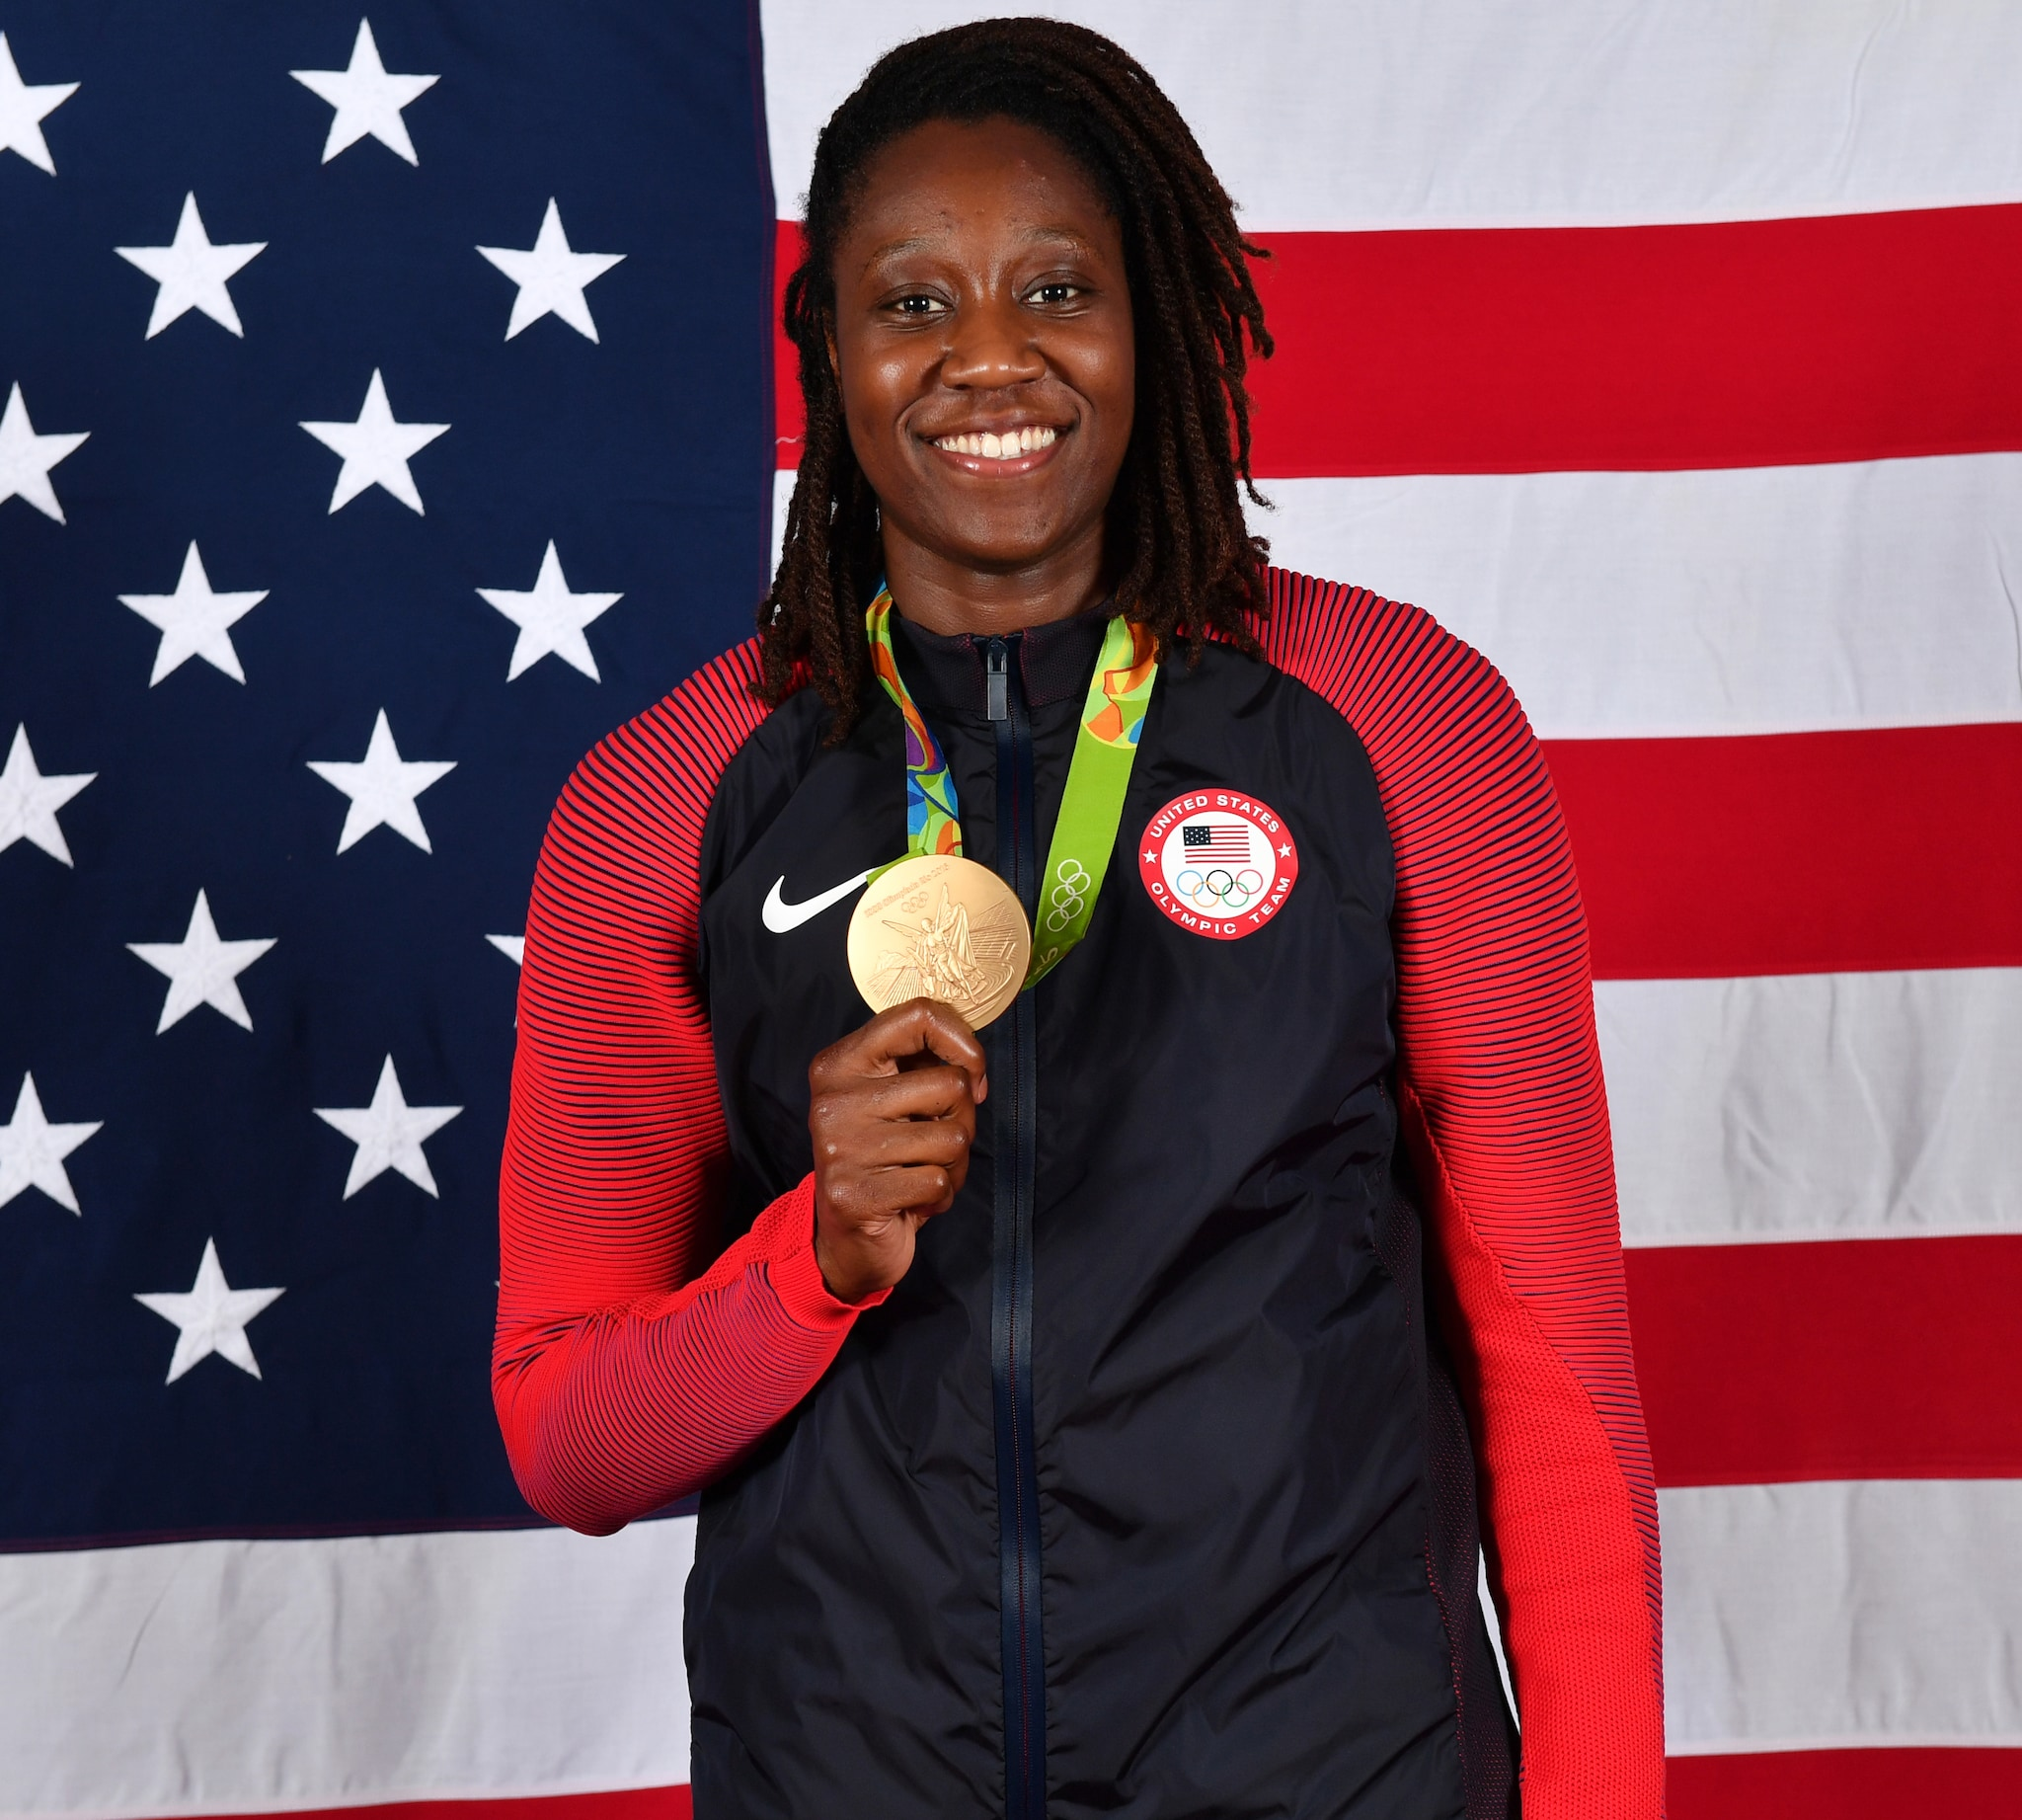 RIO DE JANEIRO - AUGUST 20:  Tina Charles #14 of the USA Basketball Women's National Team poses after winning the Gold Medal at the Rio 2016 Olympic games on August 20, 2016.   NOTE TO USER: User expressly acknowledges and agrees that, by downloading and/or using this Photograph, user is consenting to the terms and conditions of the Getty Images License Agreement. Mandatory Copyright Notice: Copyright 2016 NBAE (Photo by Jesse D. Garrabrant/NBAE via Getty Images)